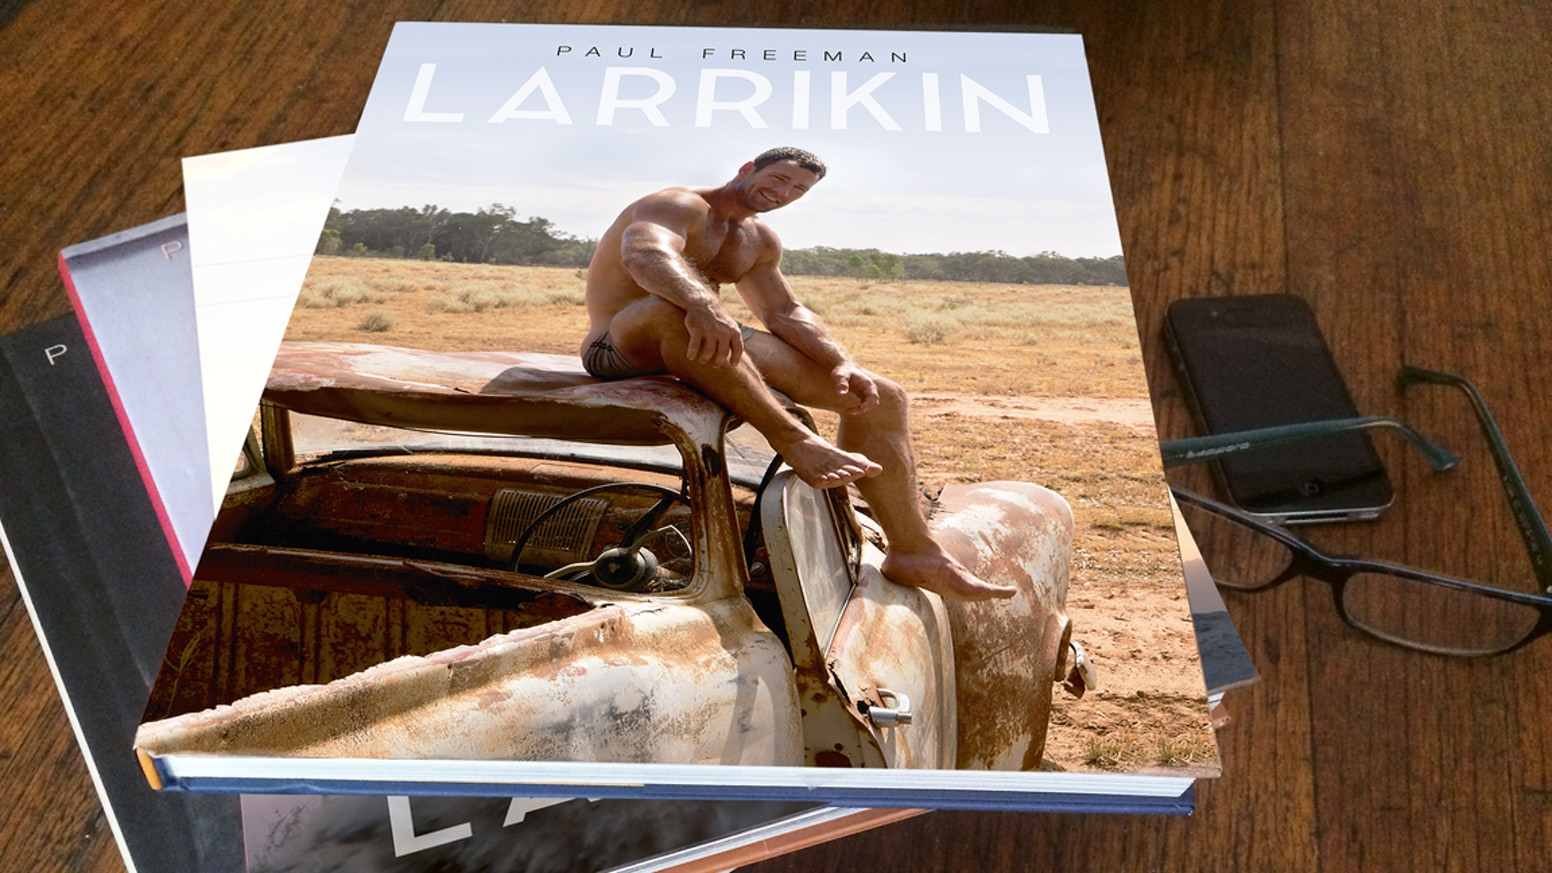 I'm publishing and distributing two new books of male nudes and portraits, LARRIKIN and LARRIKIN YAKKA, the start of a new series.